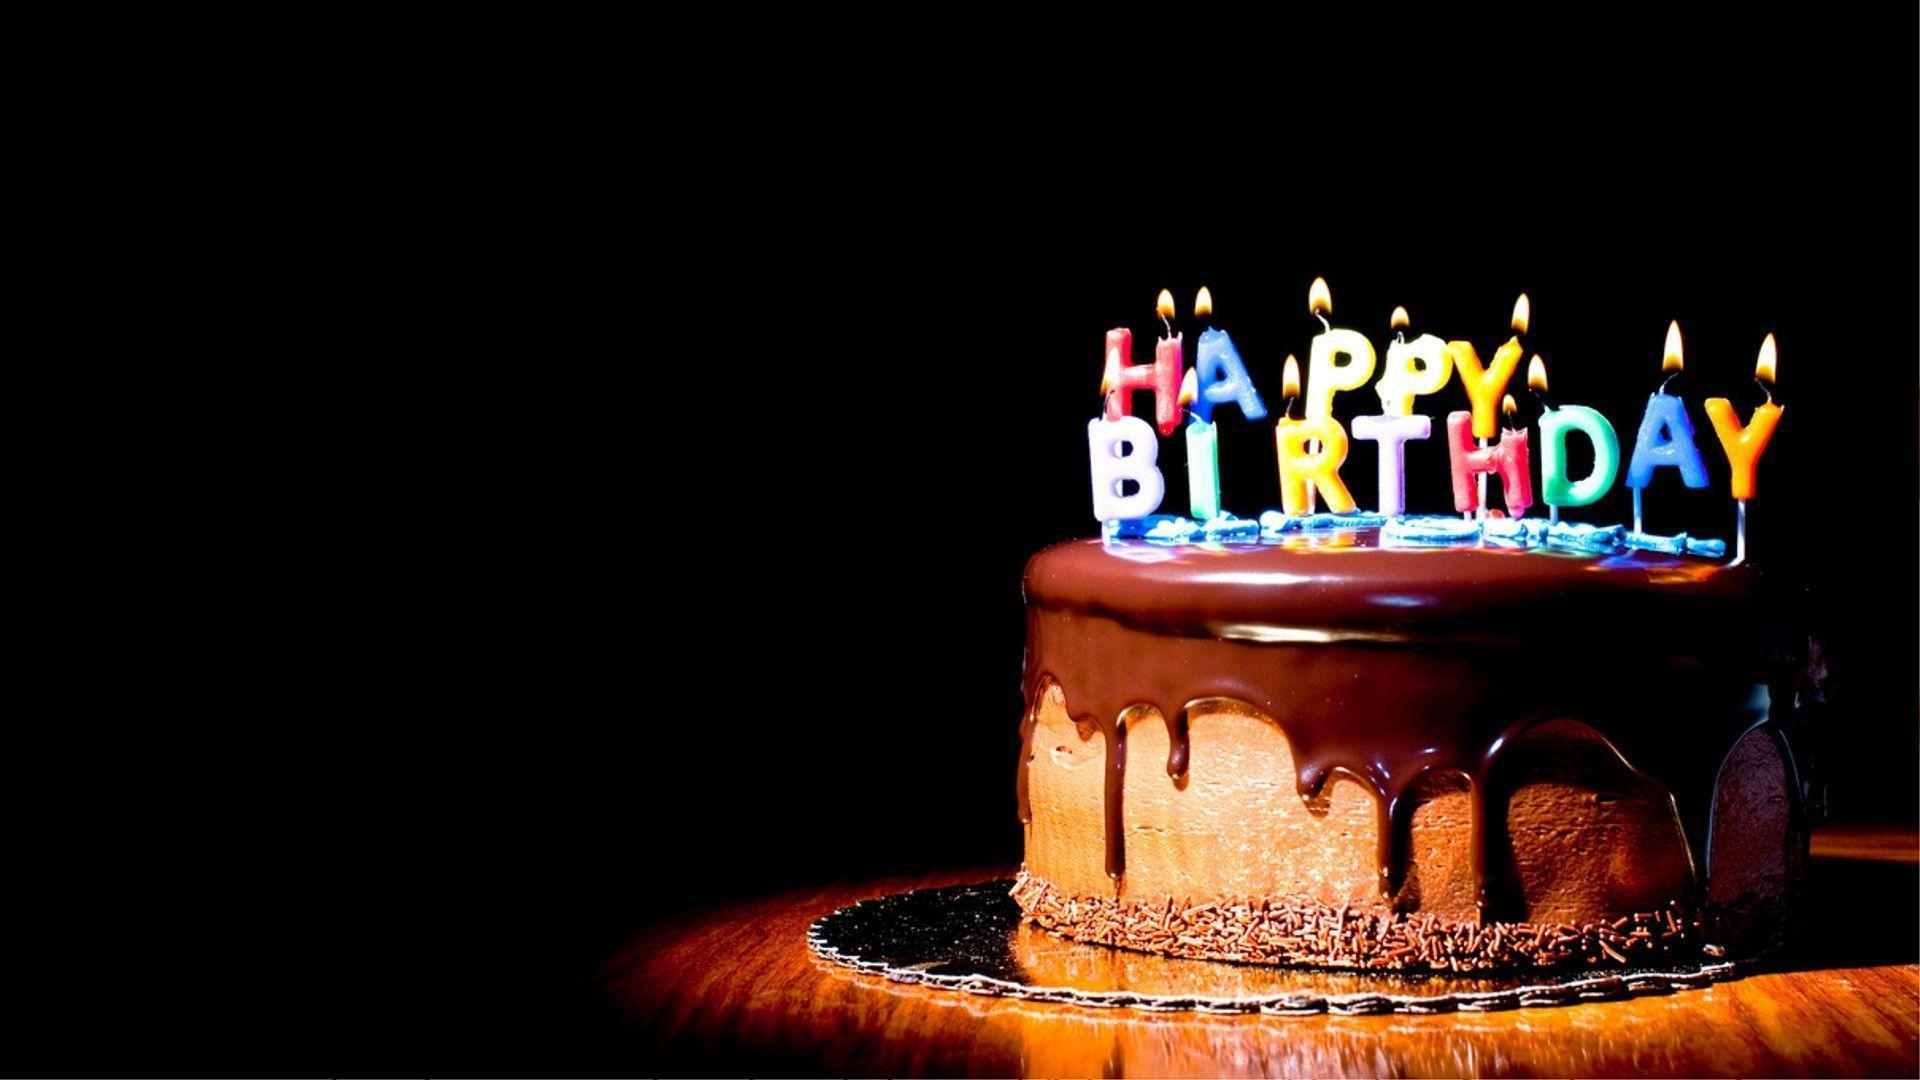 Latest Birthday Cake Hd Images : Wallpapers Happy Birthday Cake - Wallpaper Cave